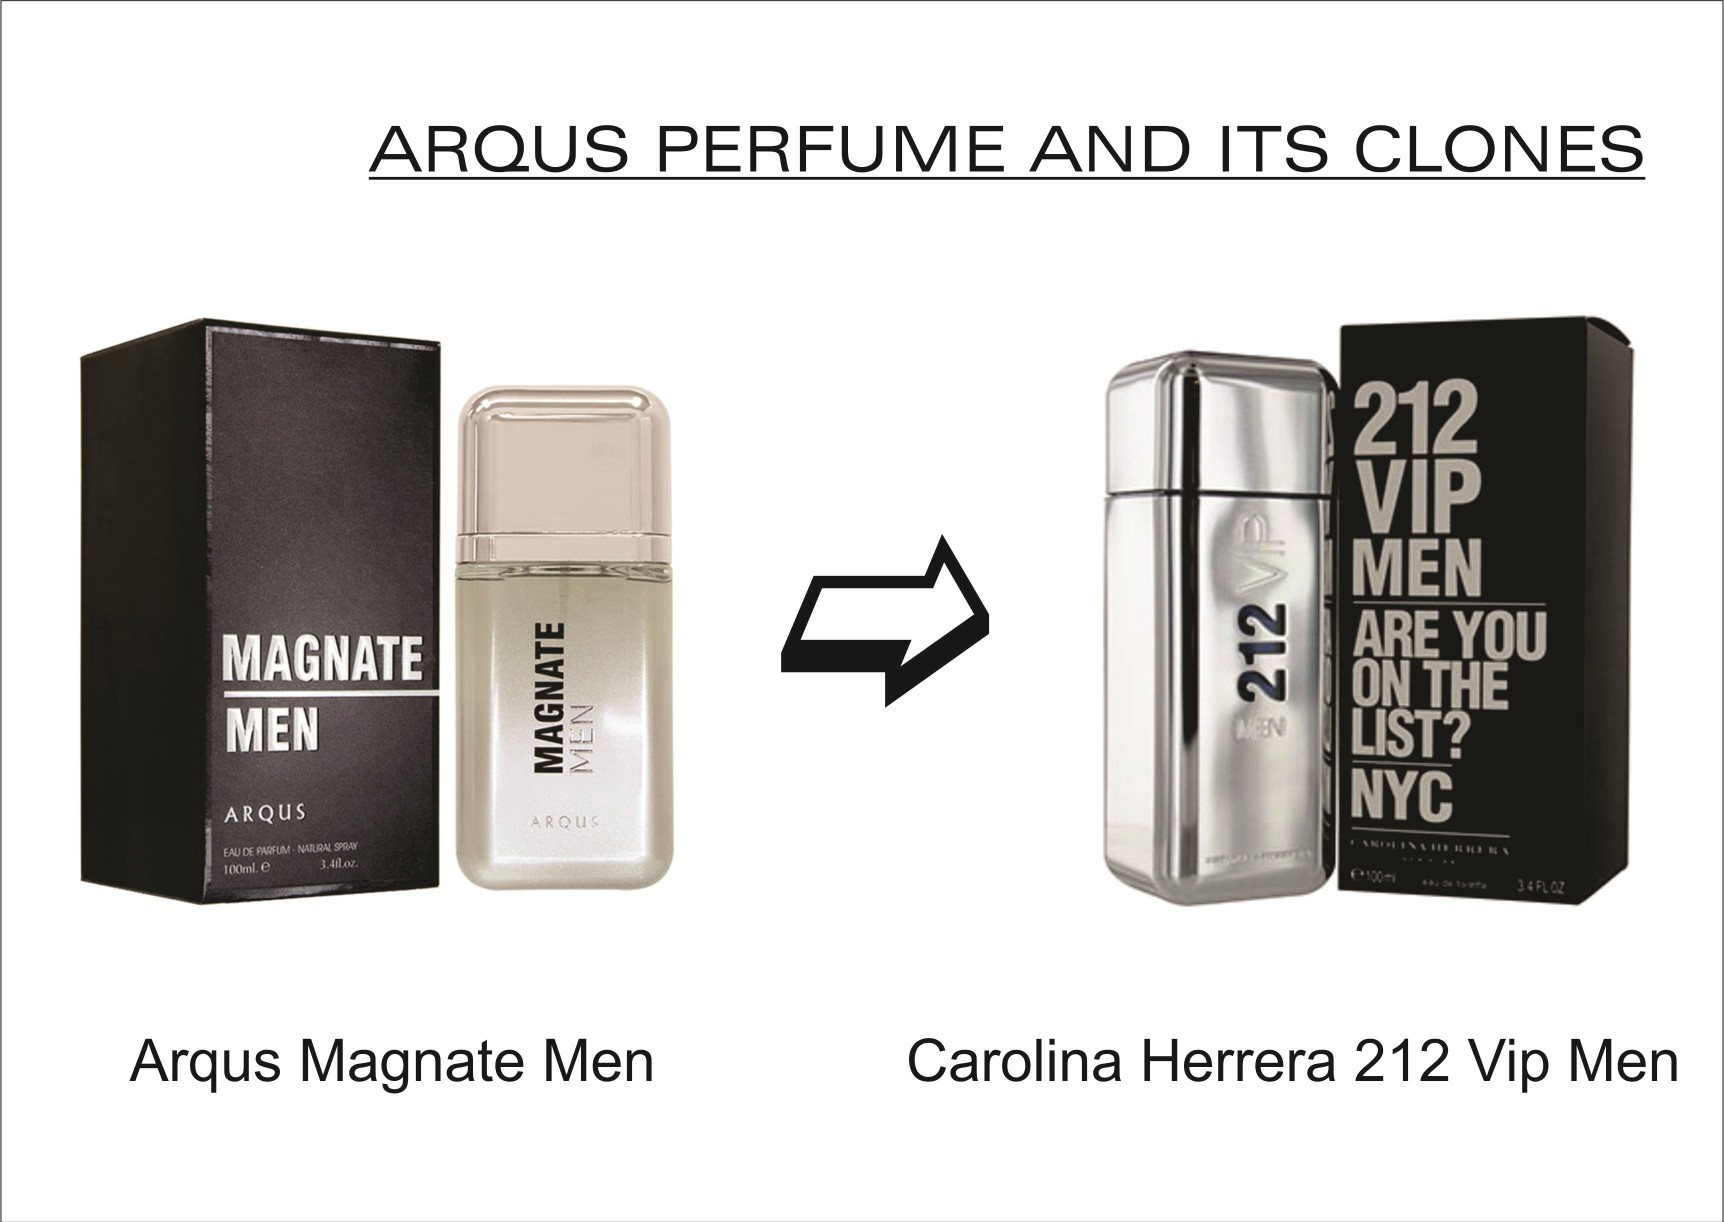 arqus-magnate-men-for-men-100-ml-edp-by-lattafa-perfumes-212-vip-men-by-carolina-herrera-perfume-for-men-100-ml